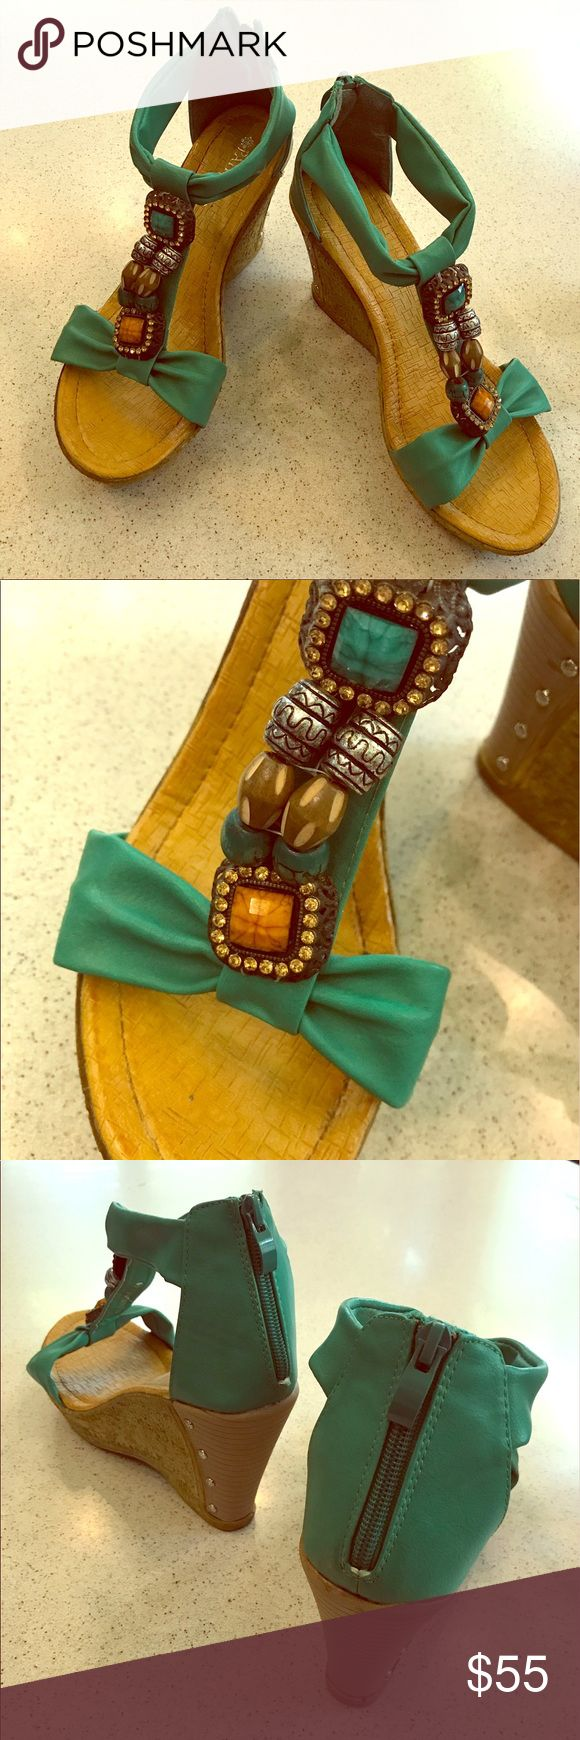 Turquoise wedges Slip into these sexy turquoise wedges this spring and summer! These super comfortable shoes are great with dresses, shorts, and jeans. These shoes have been worn once. They are in brand-new condition. Shoes Wedges